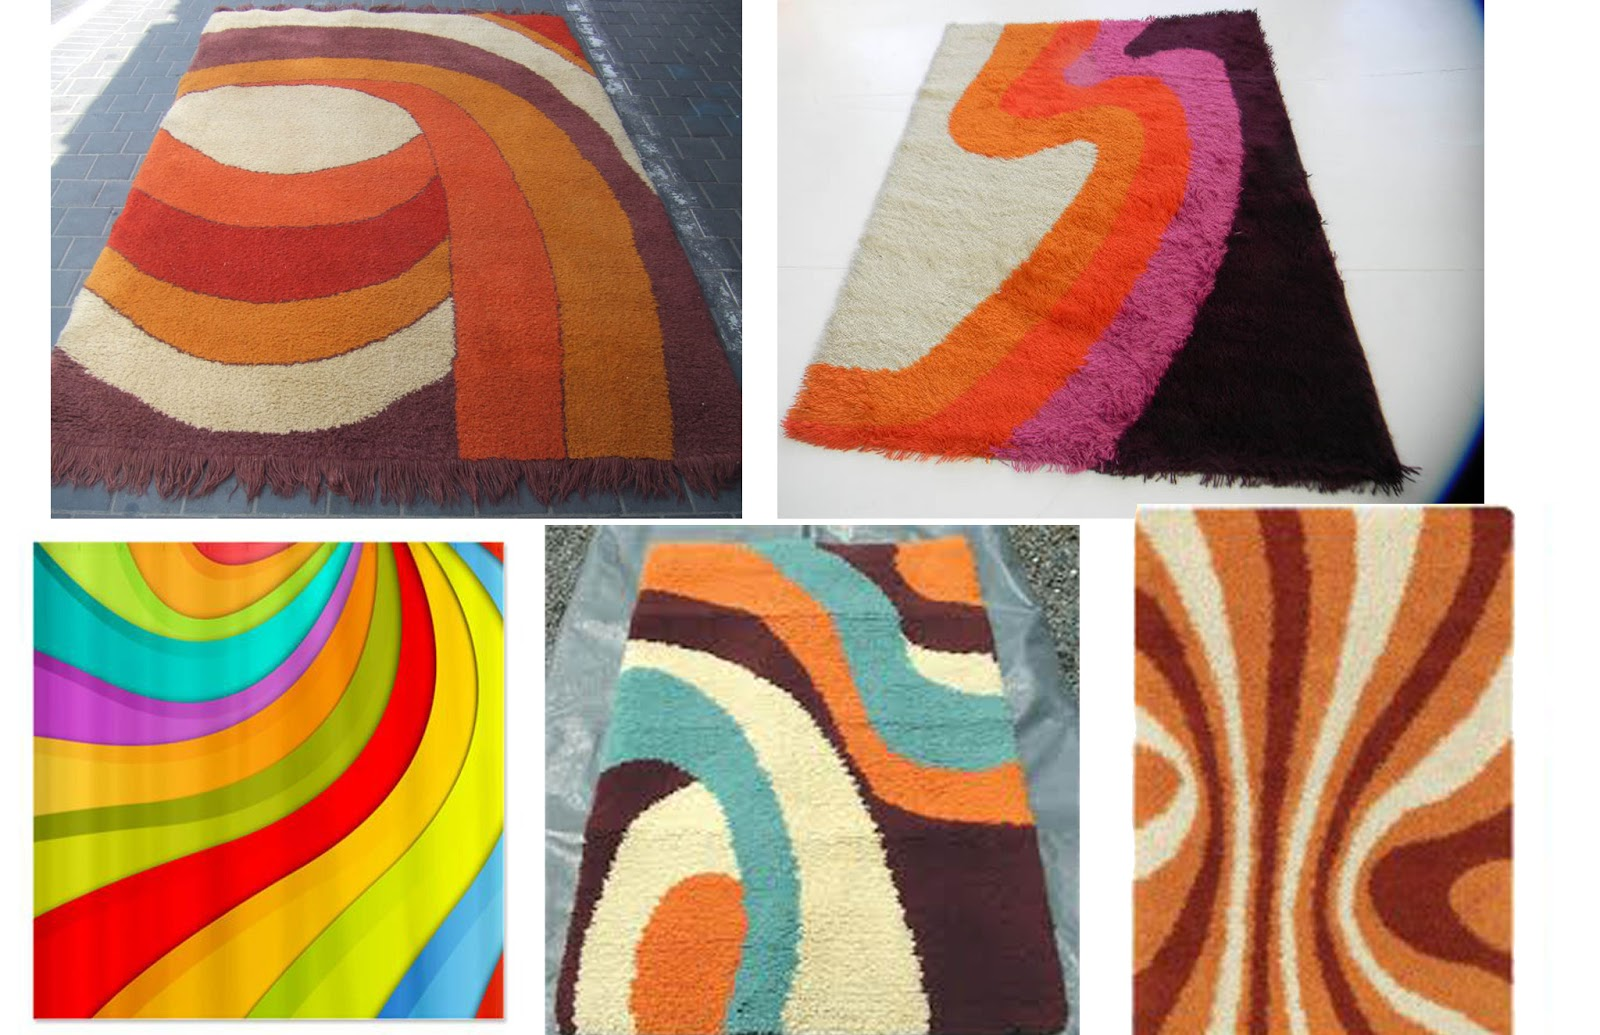 And Here Is Me Playing With Colorways On My Own Rug Design: